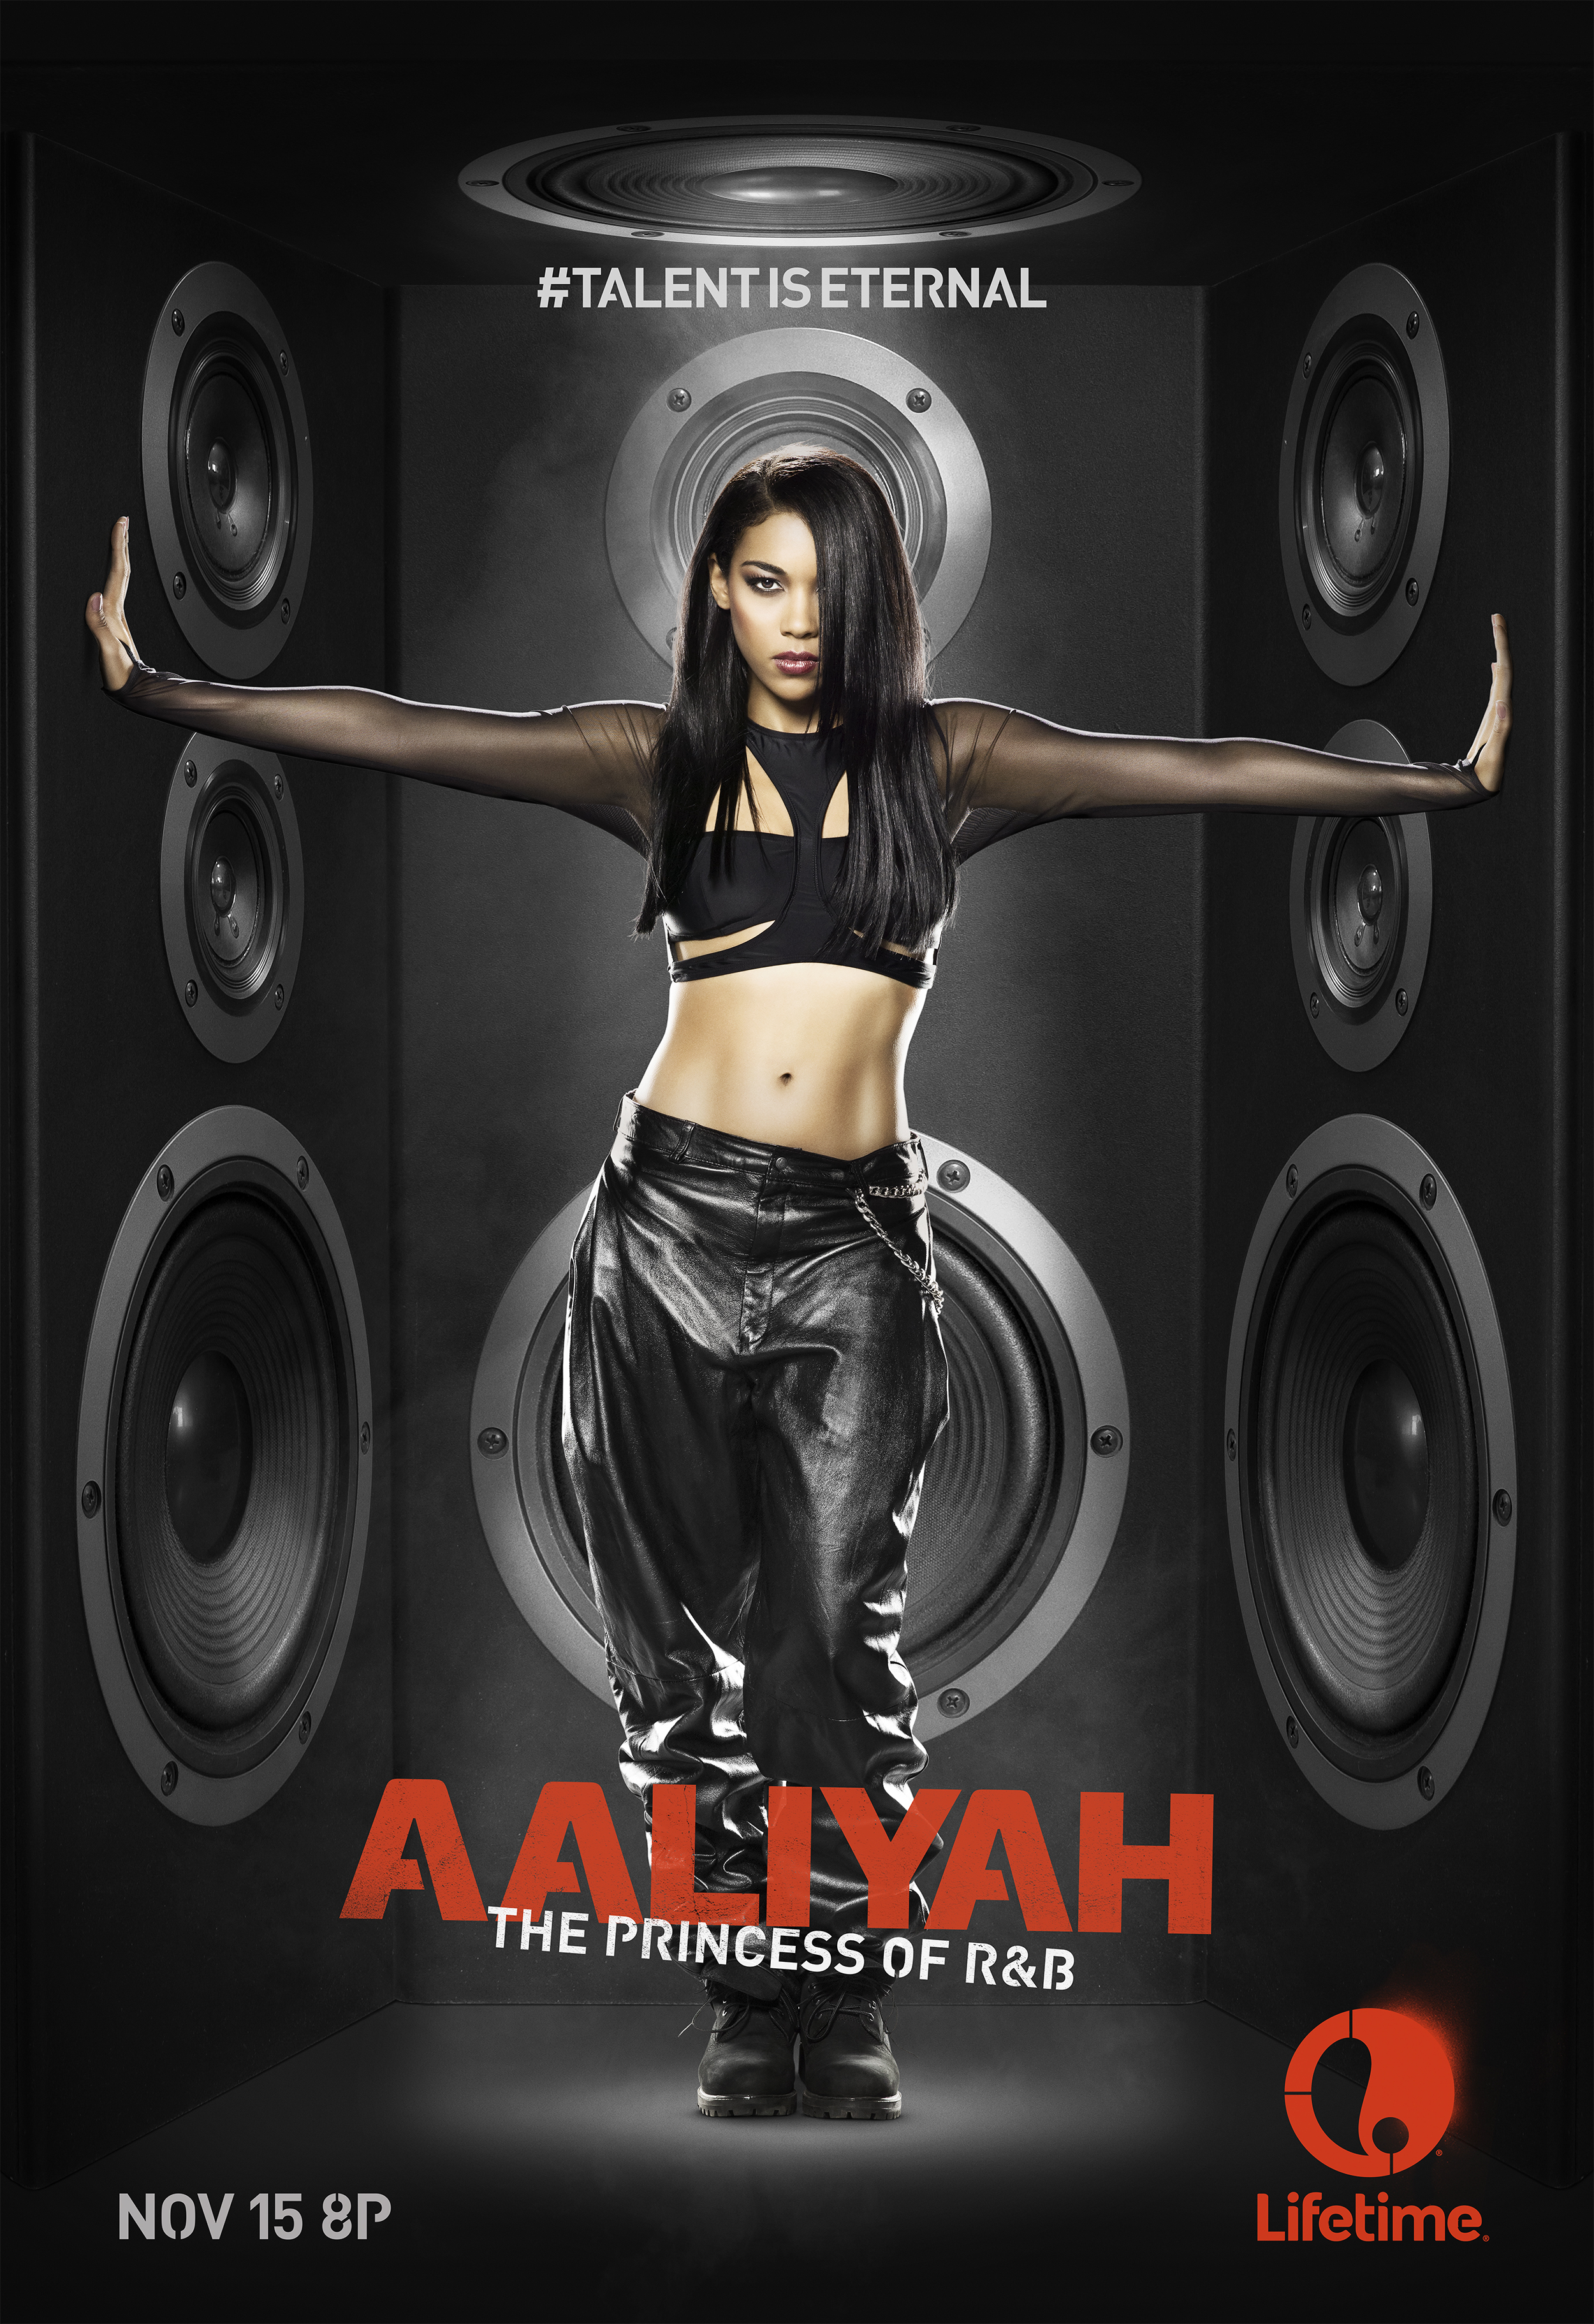 aaliyah_speakers_finish